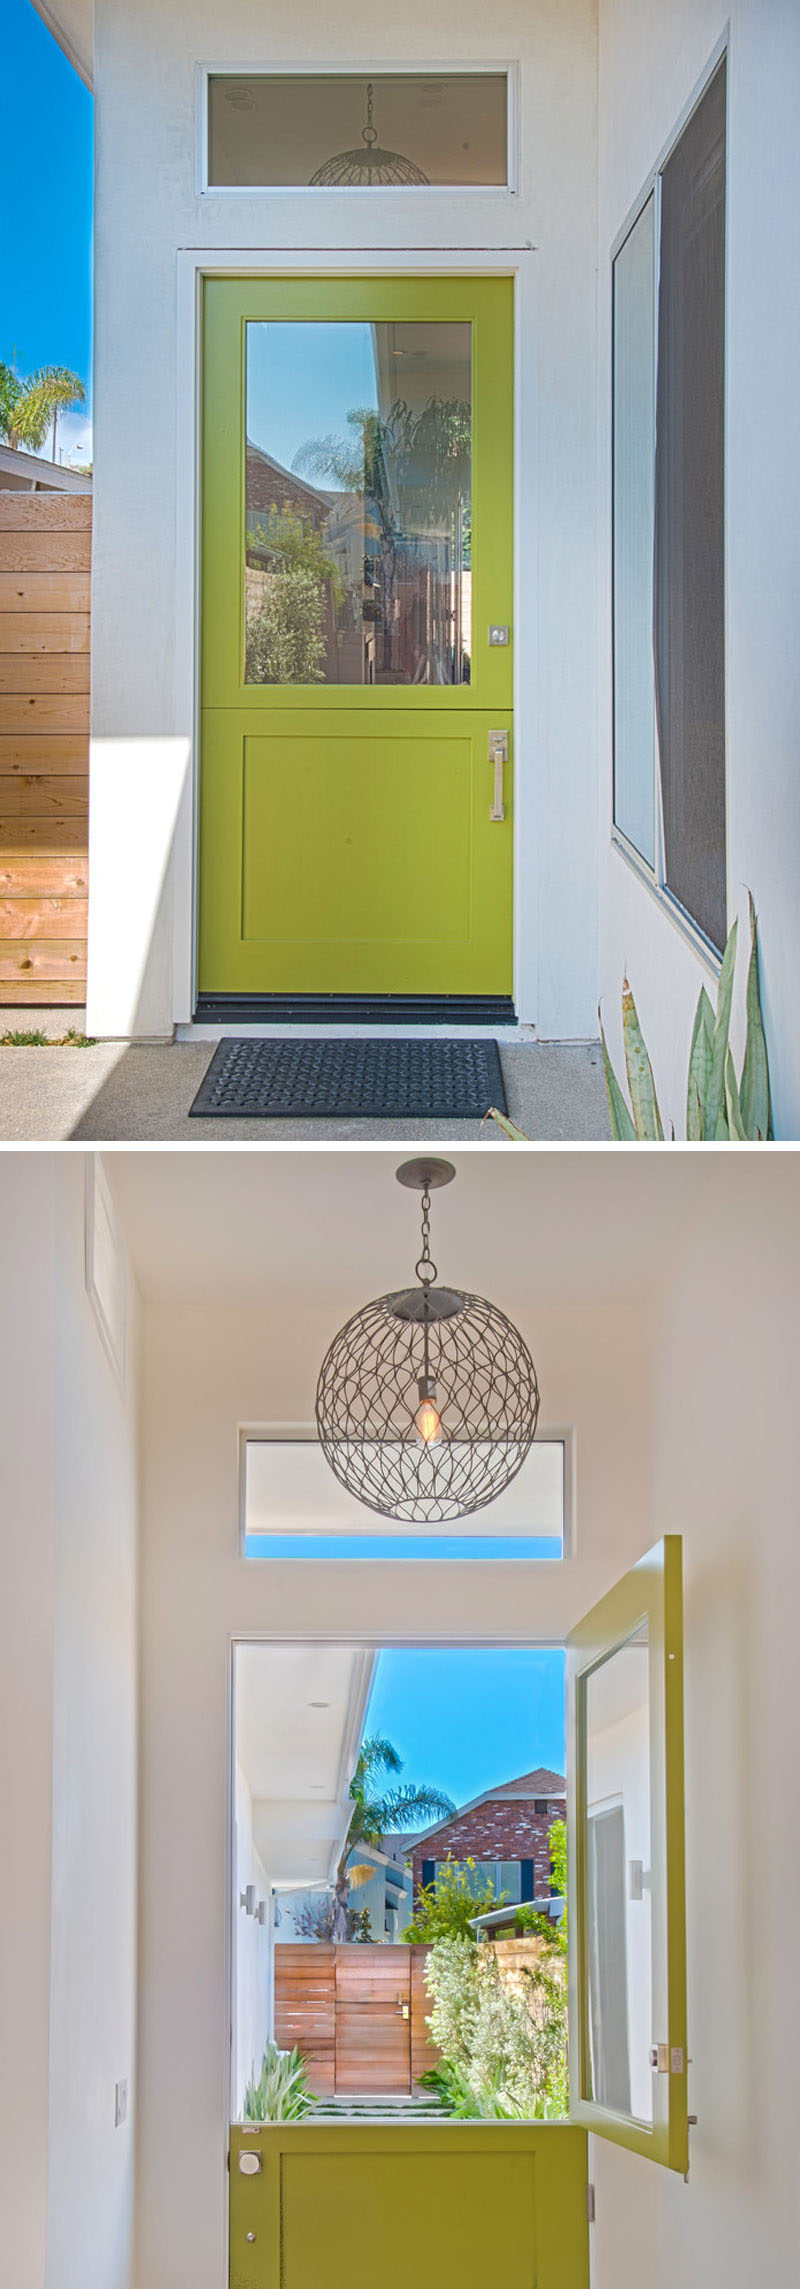 Superieur Door Design Ideas   9 Examples Of Modern Dutch Doors // A Bright Green Dutch